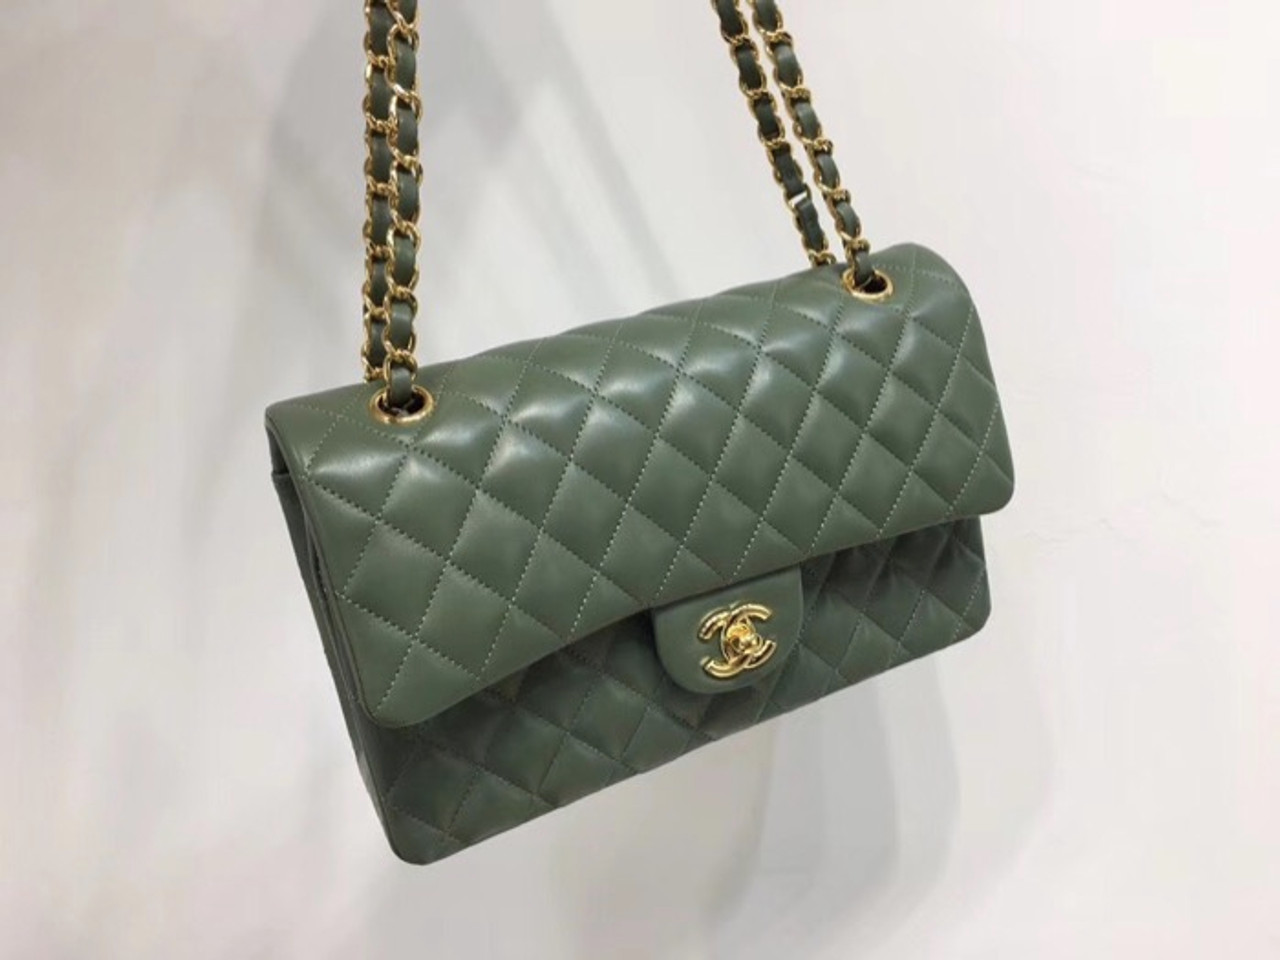 3a954b55362d Chanel Classic Flap 25cm Bag Gold Hardware Lambskin Leather Spring Summer  2018 Collection